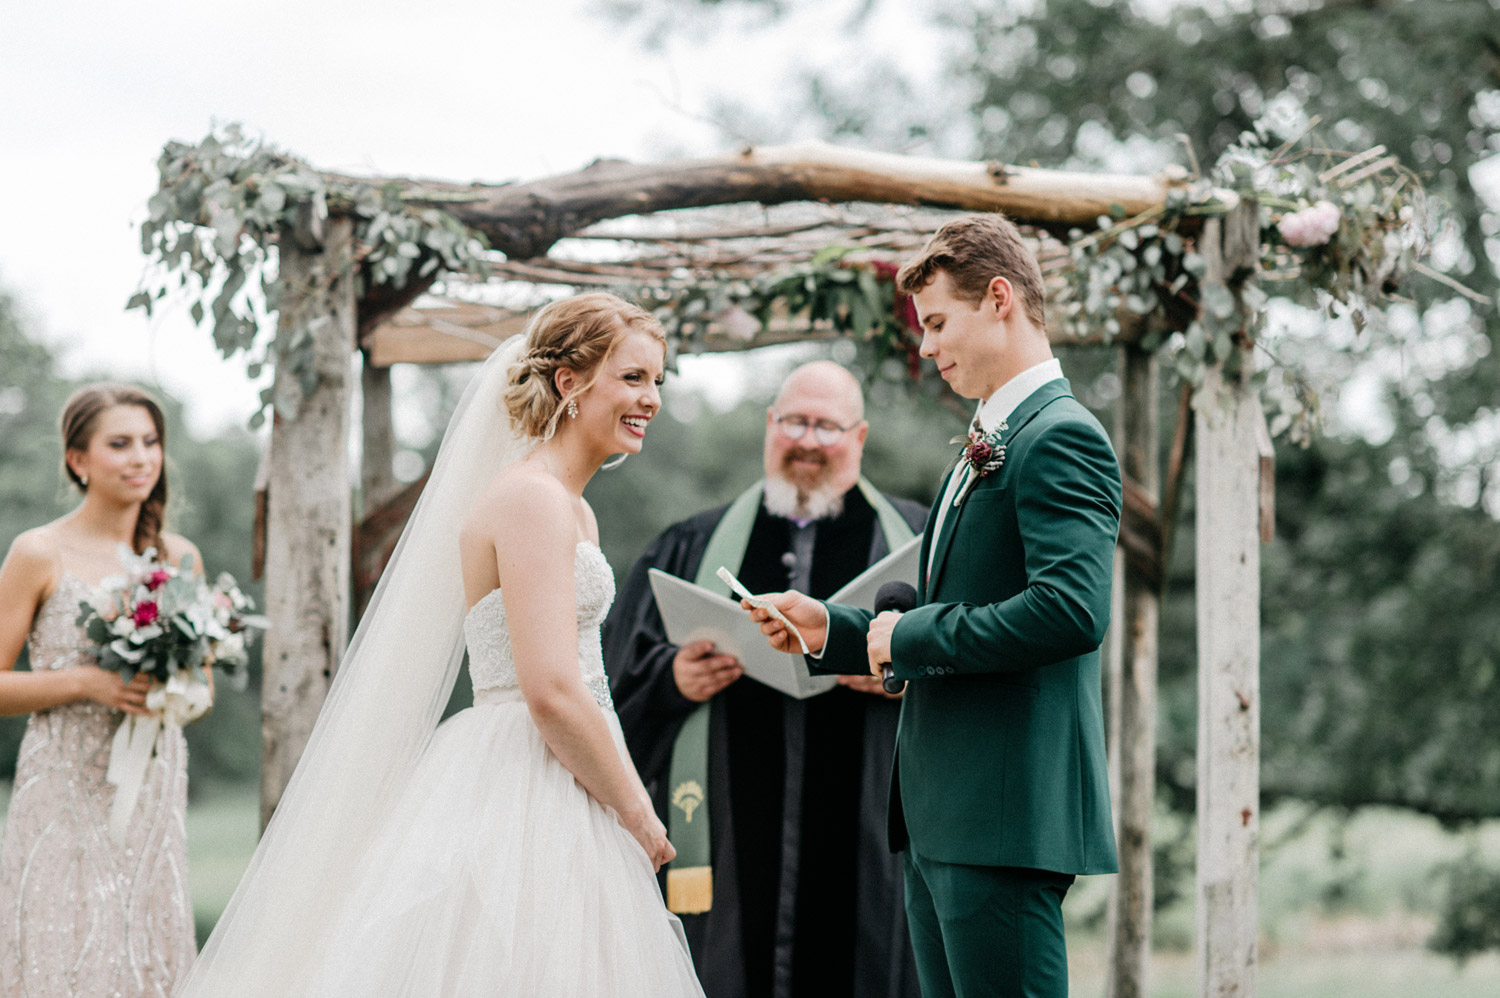 groom reading vows during outdoor ceremony at rustic oaks